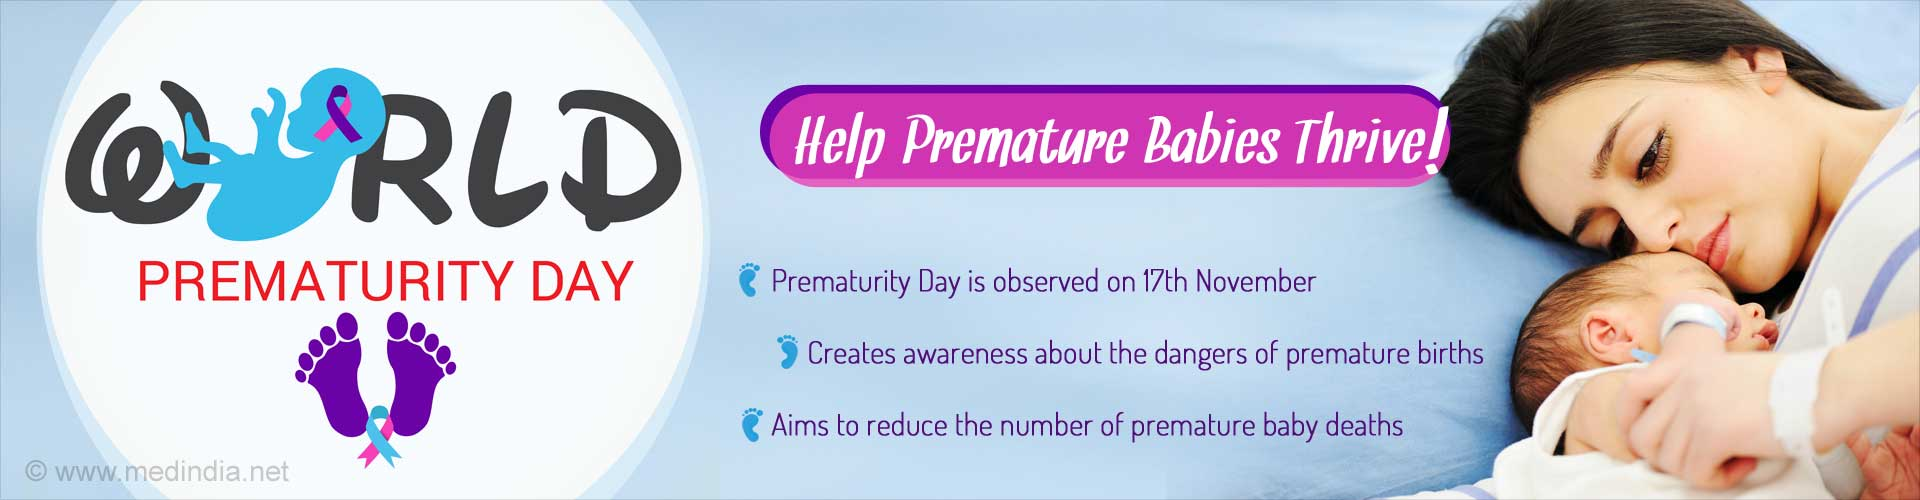 World Prematurity Day: Premature Babies Also Have a Right to Live